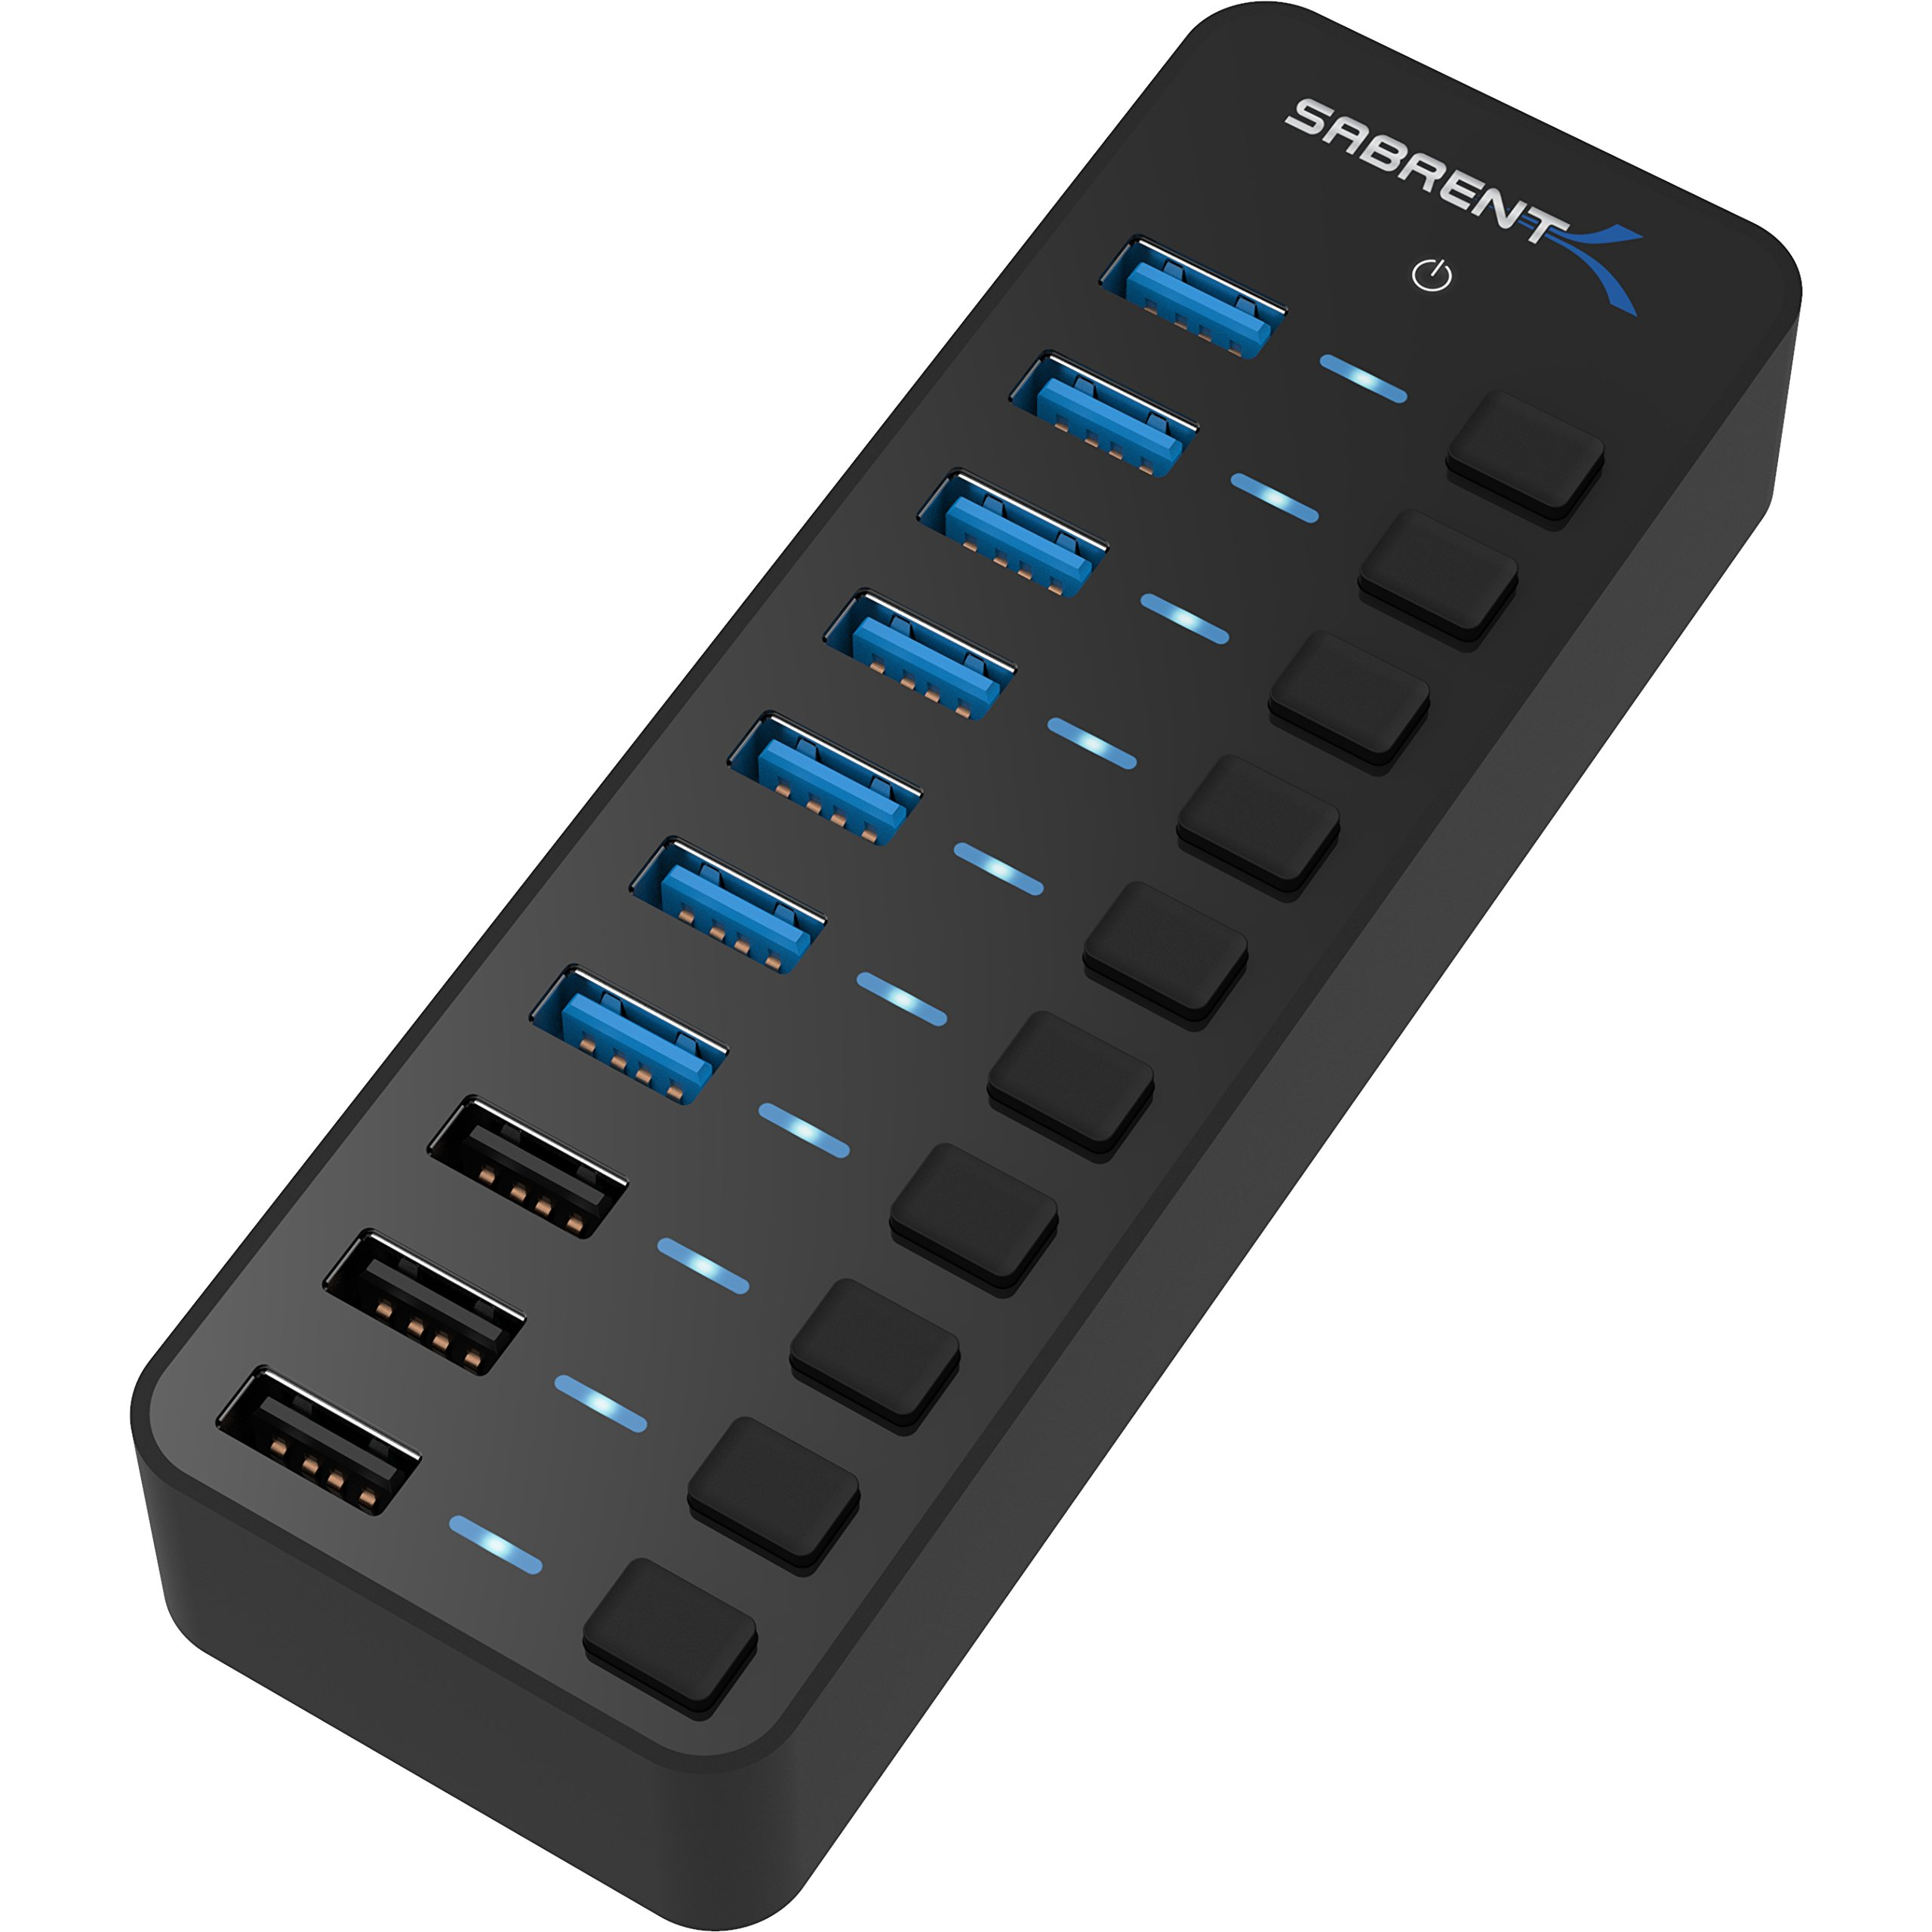 Sabrent 60W 7-Port USB 3.0 Hub + 3 Smart Charging Ports with Individual Power Switches and LEDs includes 60W 12V/5A power adapter (HB-B7C3) by Sabrent (Image #1)